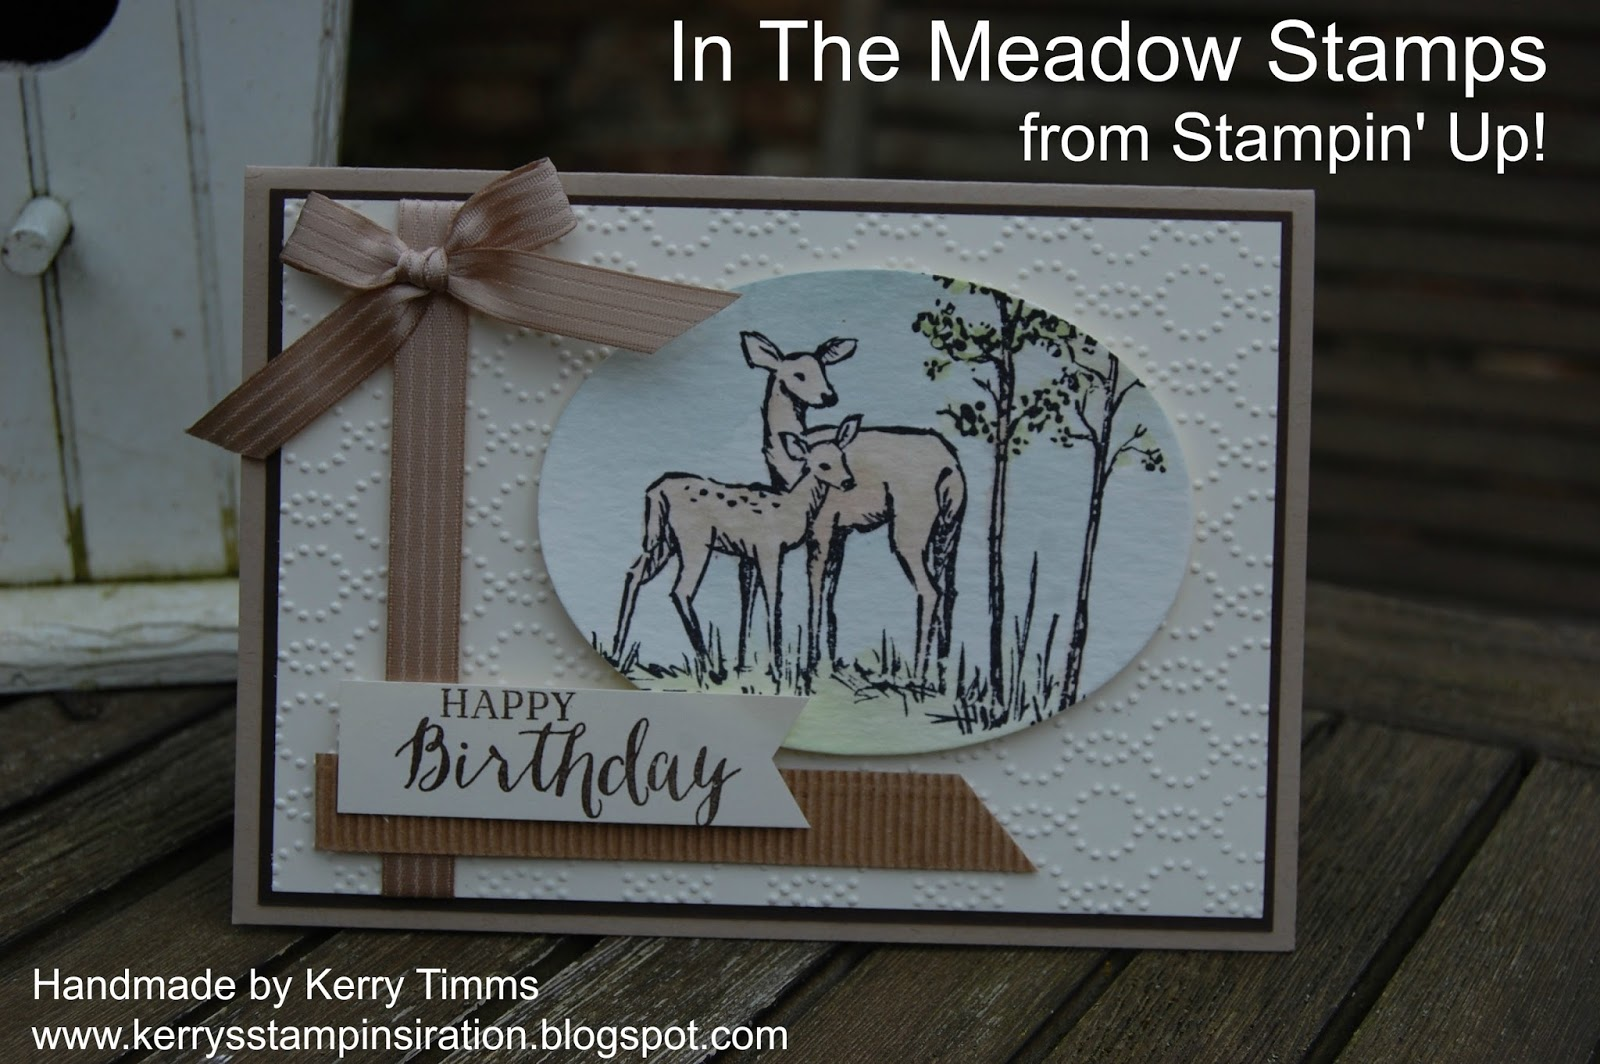 Stampin spiration: More from In The Meadow